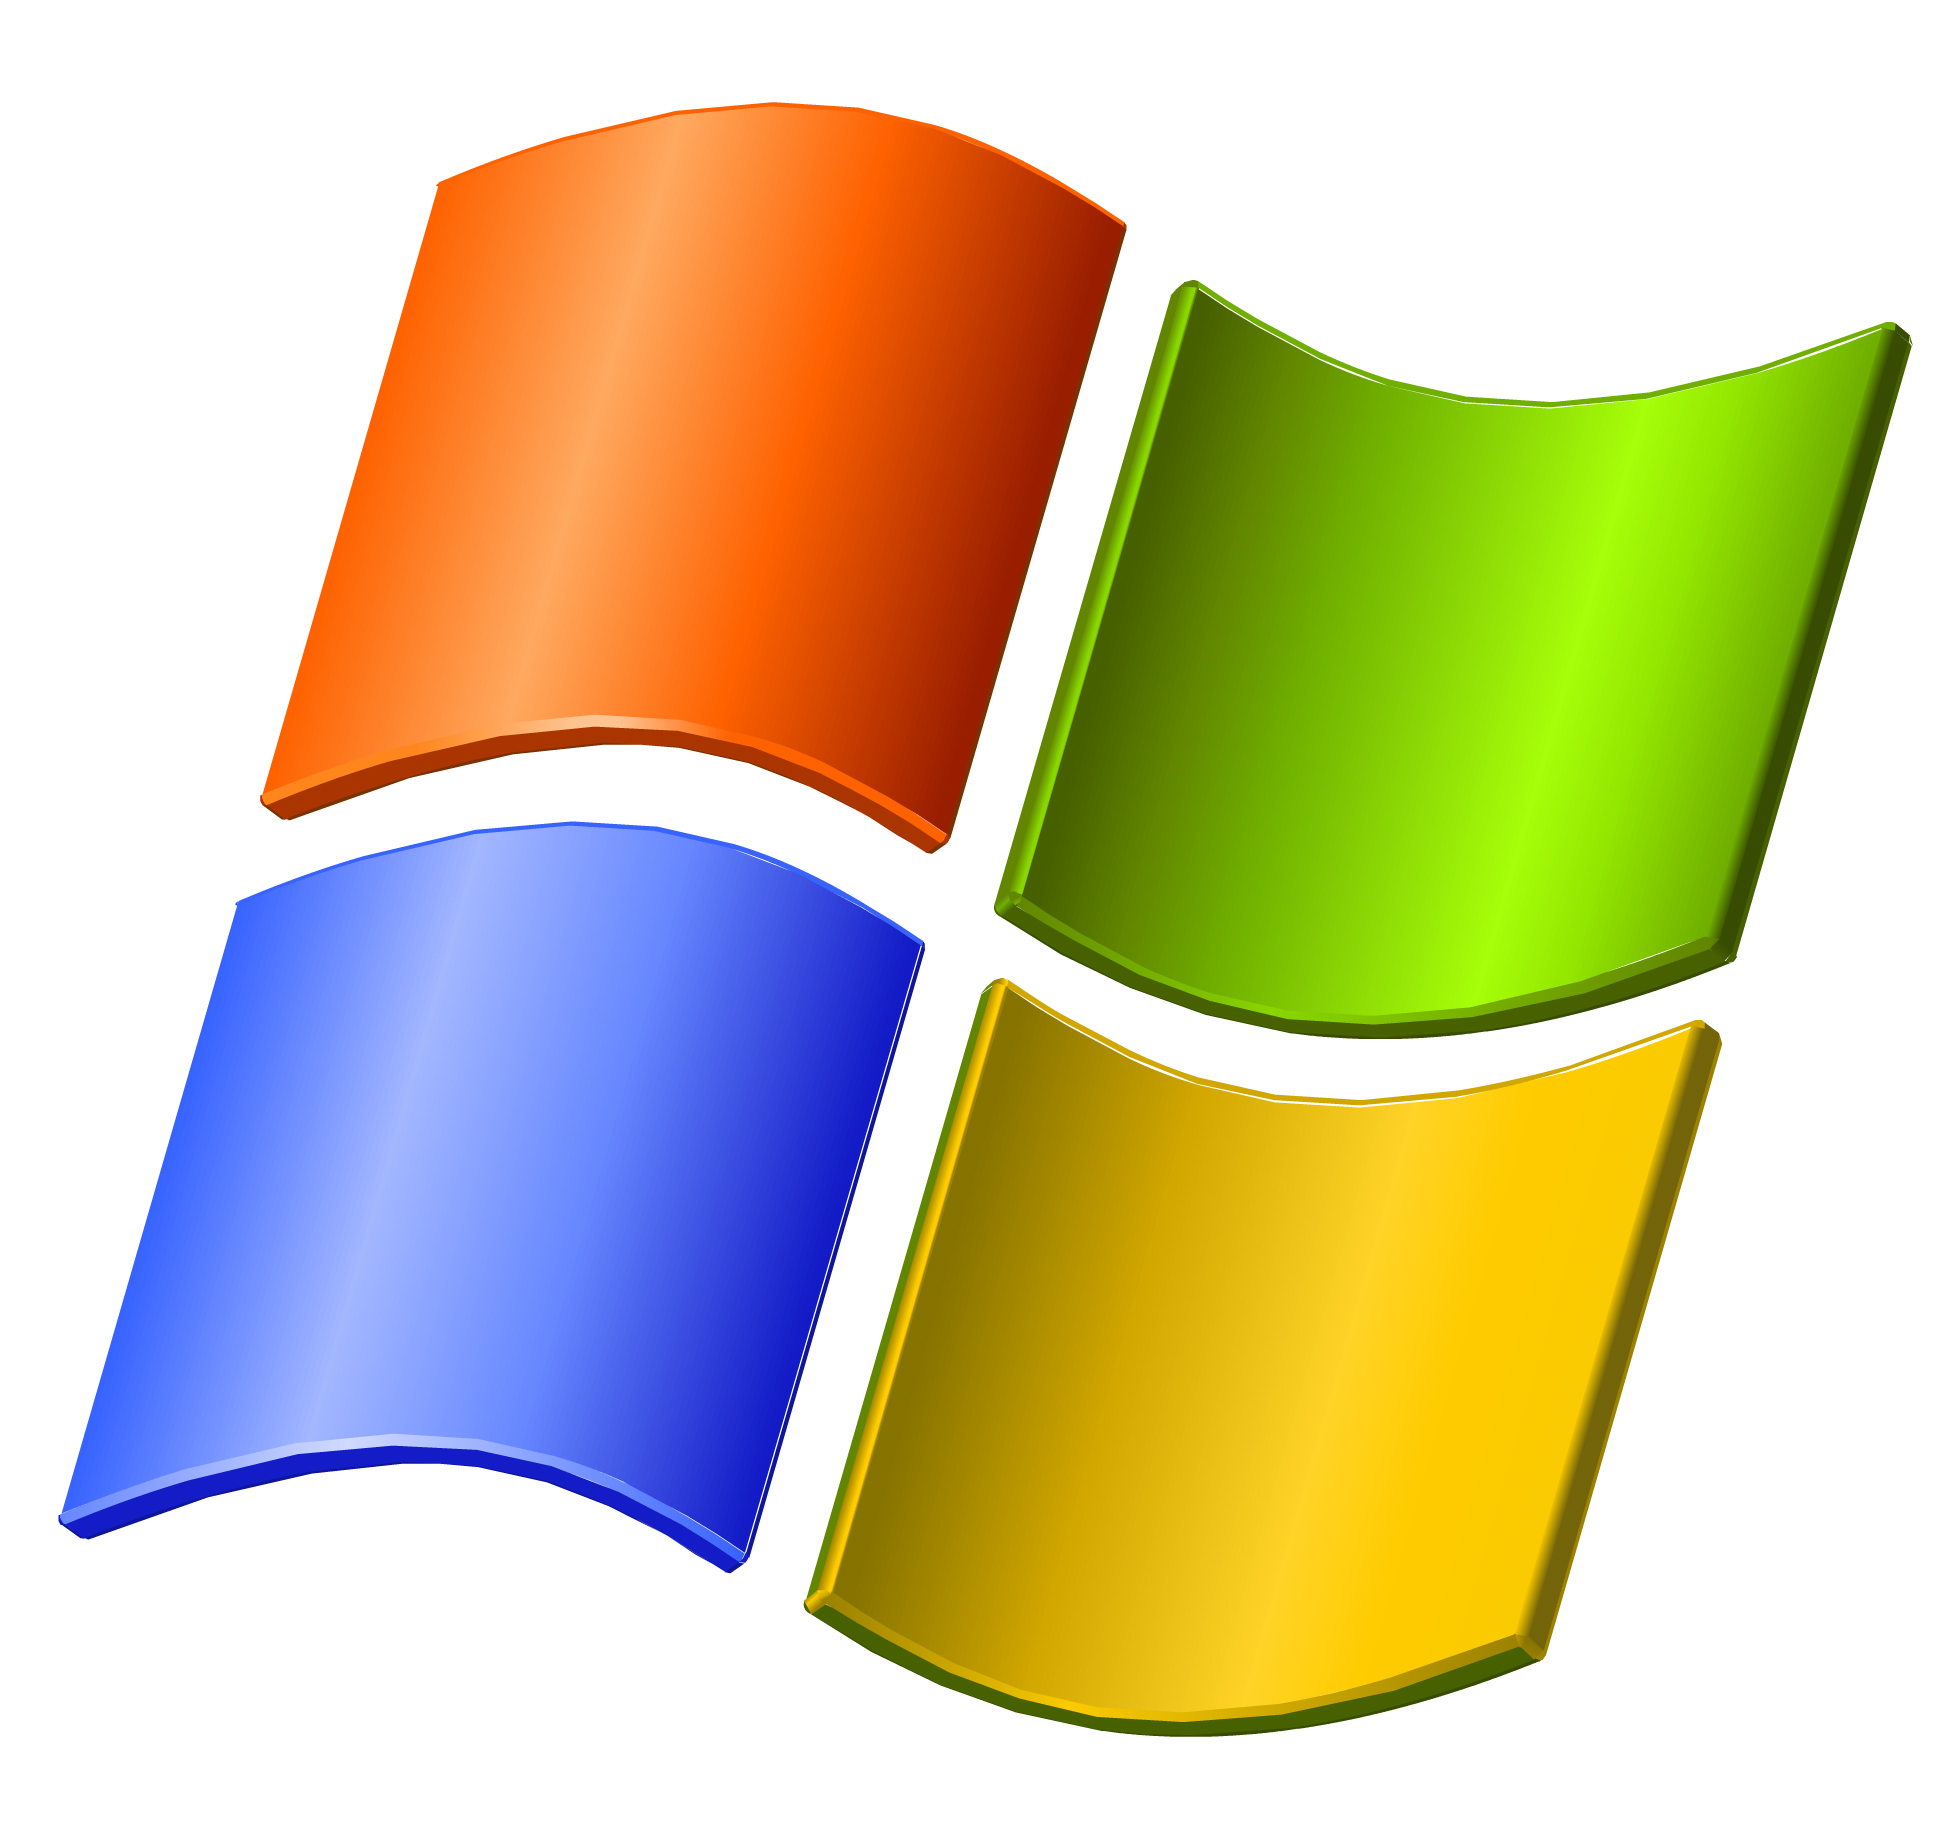 The logo microsoft windows for Microsoft windows